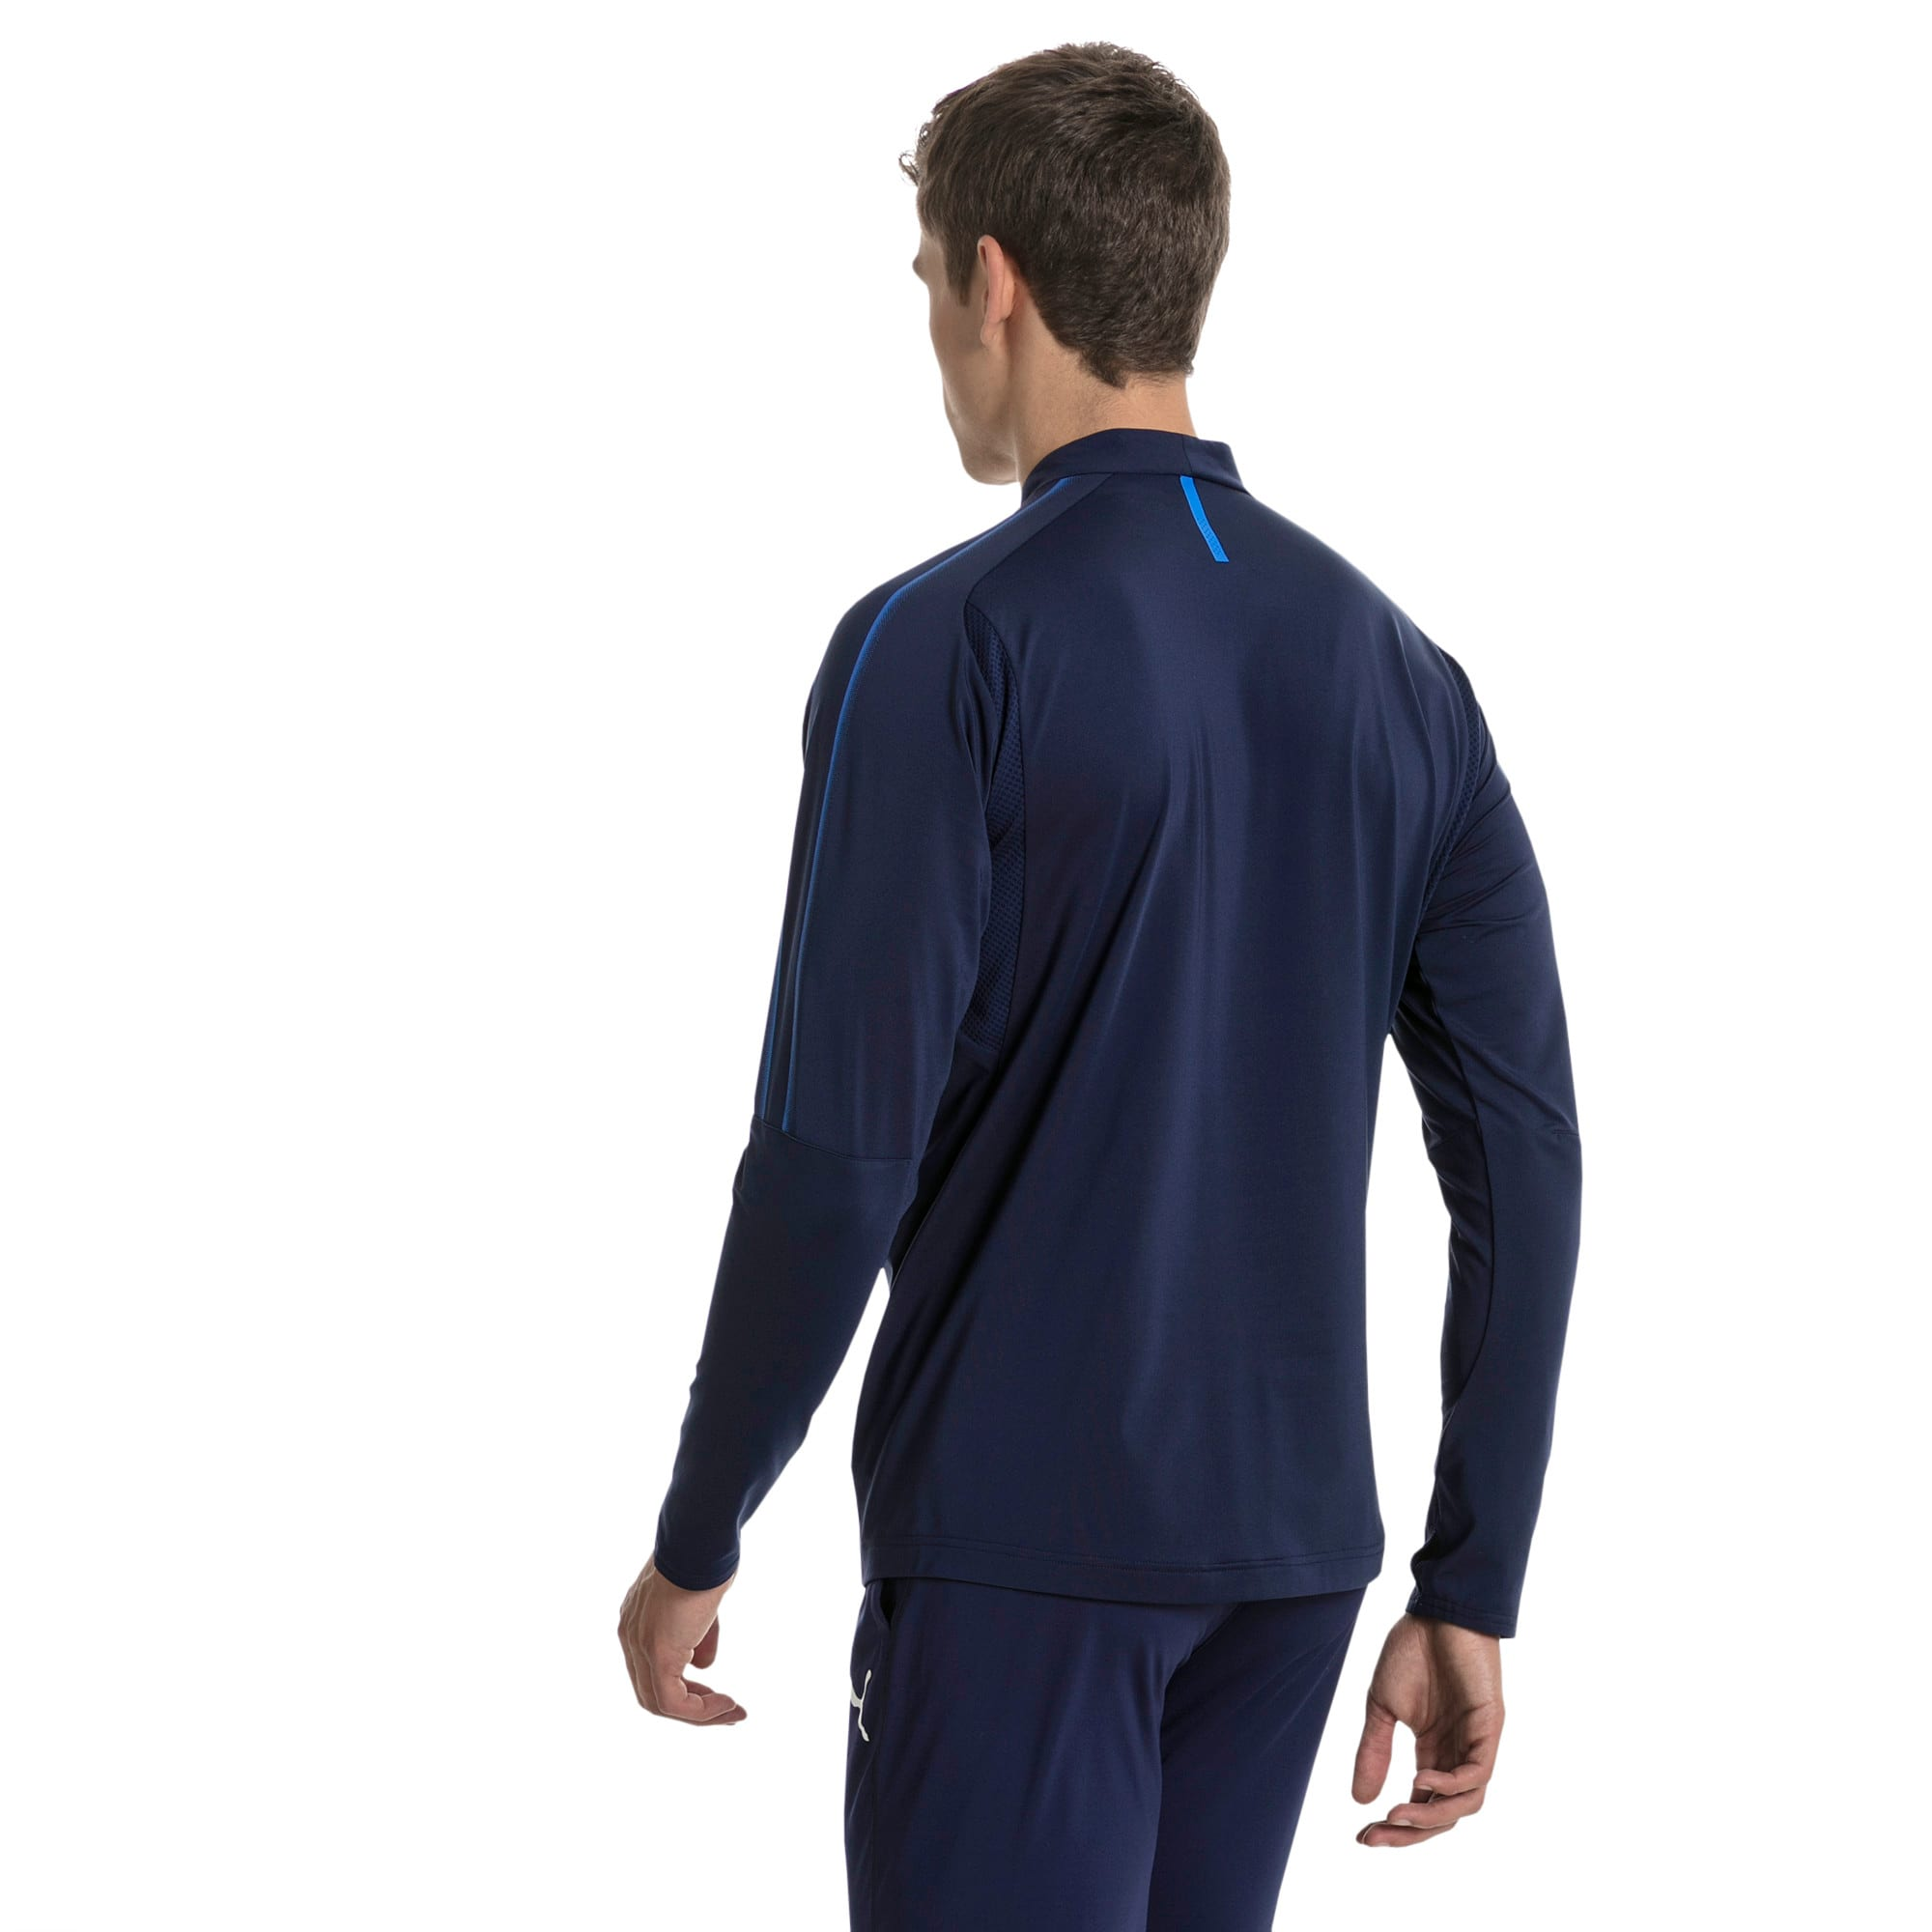 Thumbnail 3 of Czech Republic 1/4 Zip Training Top, Peacoat, medium